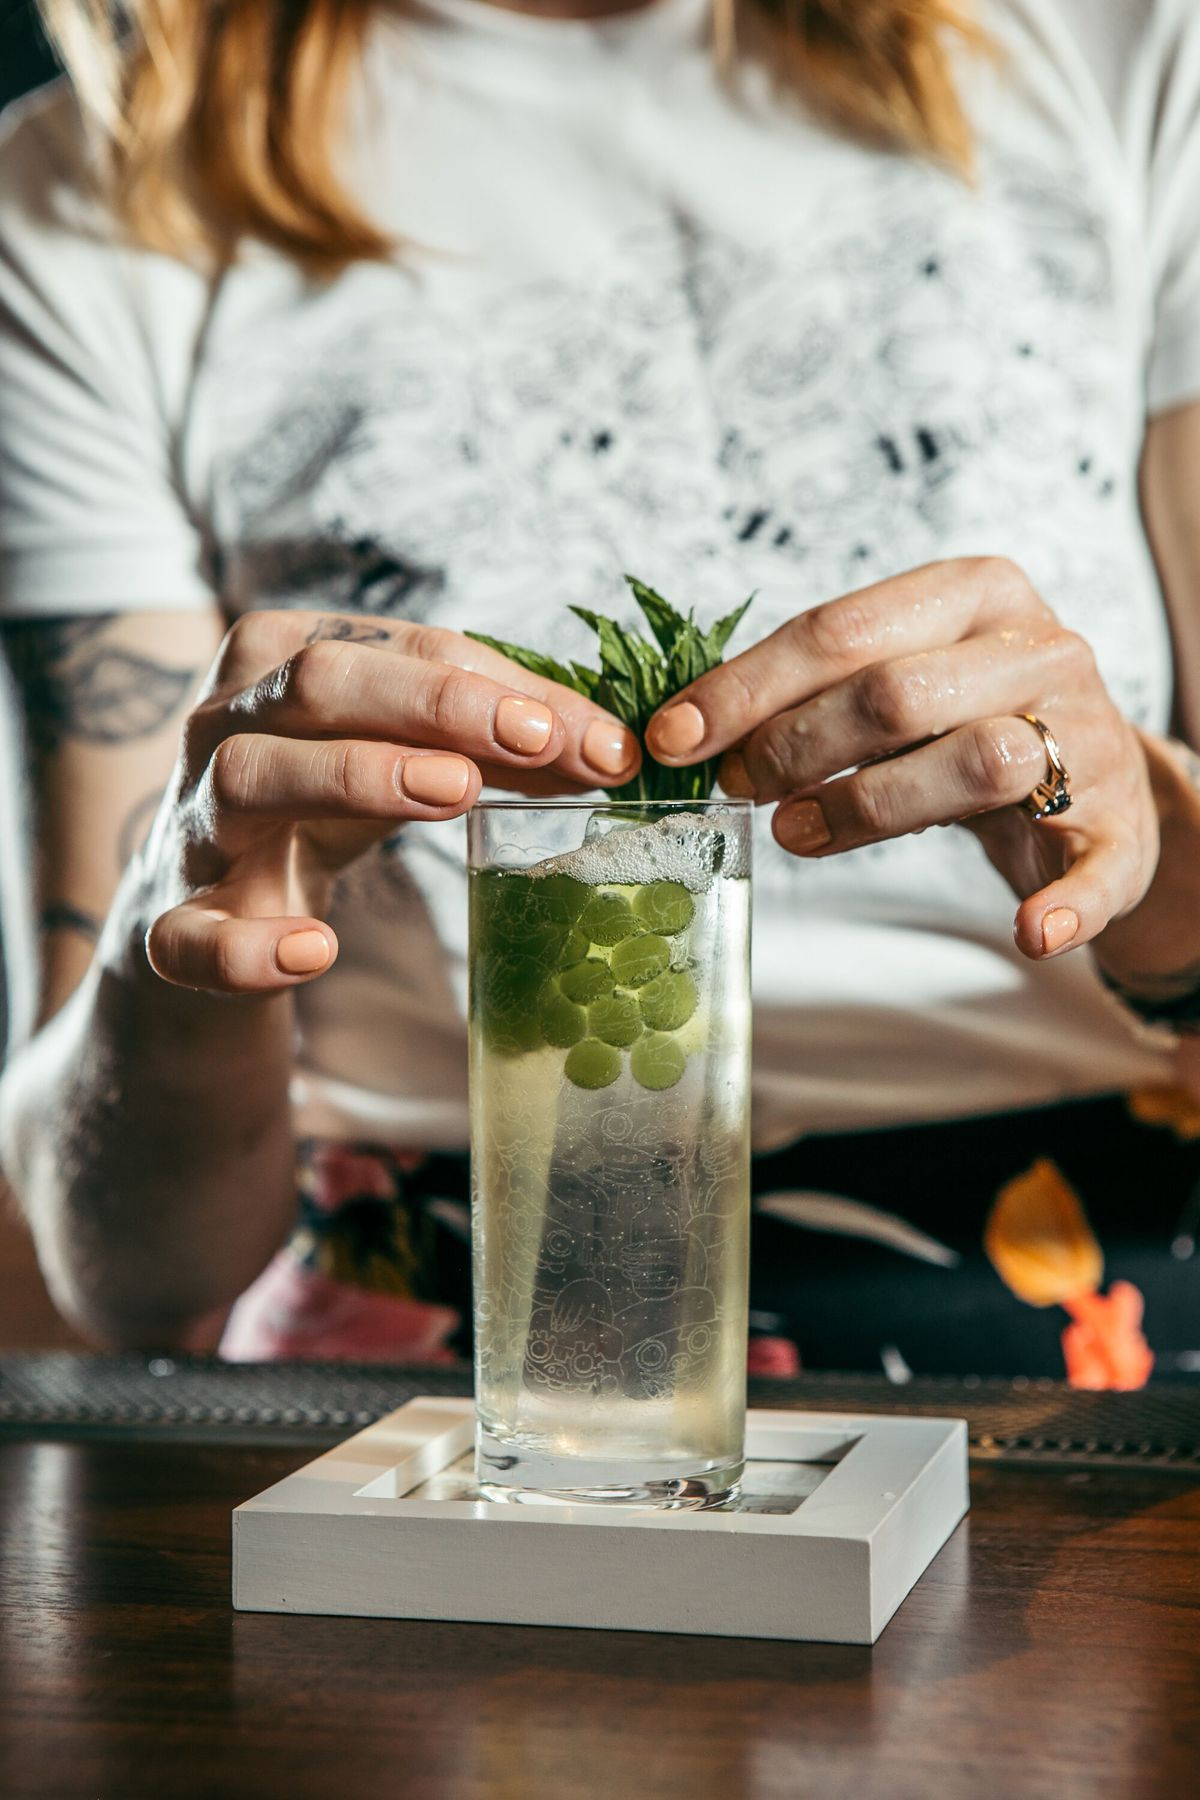 Katie Renshaw puts the final touches on Flex Yo Hustle, a cocktail she made during the United States Bartenders' Guild World Class.